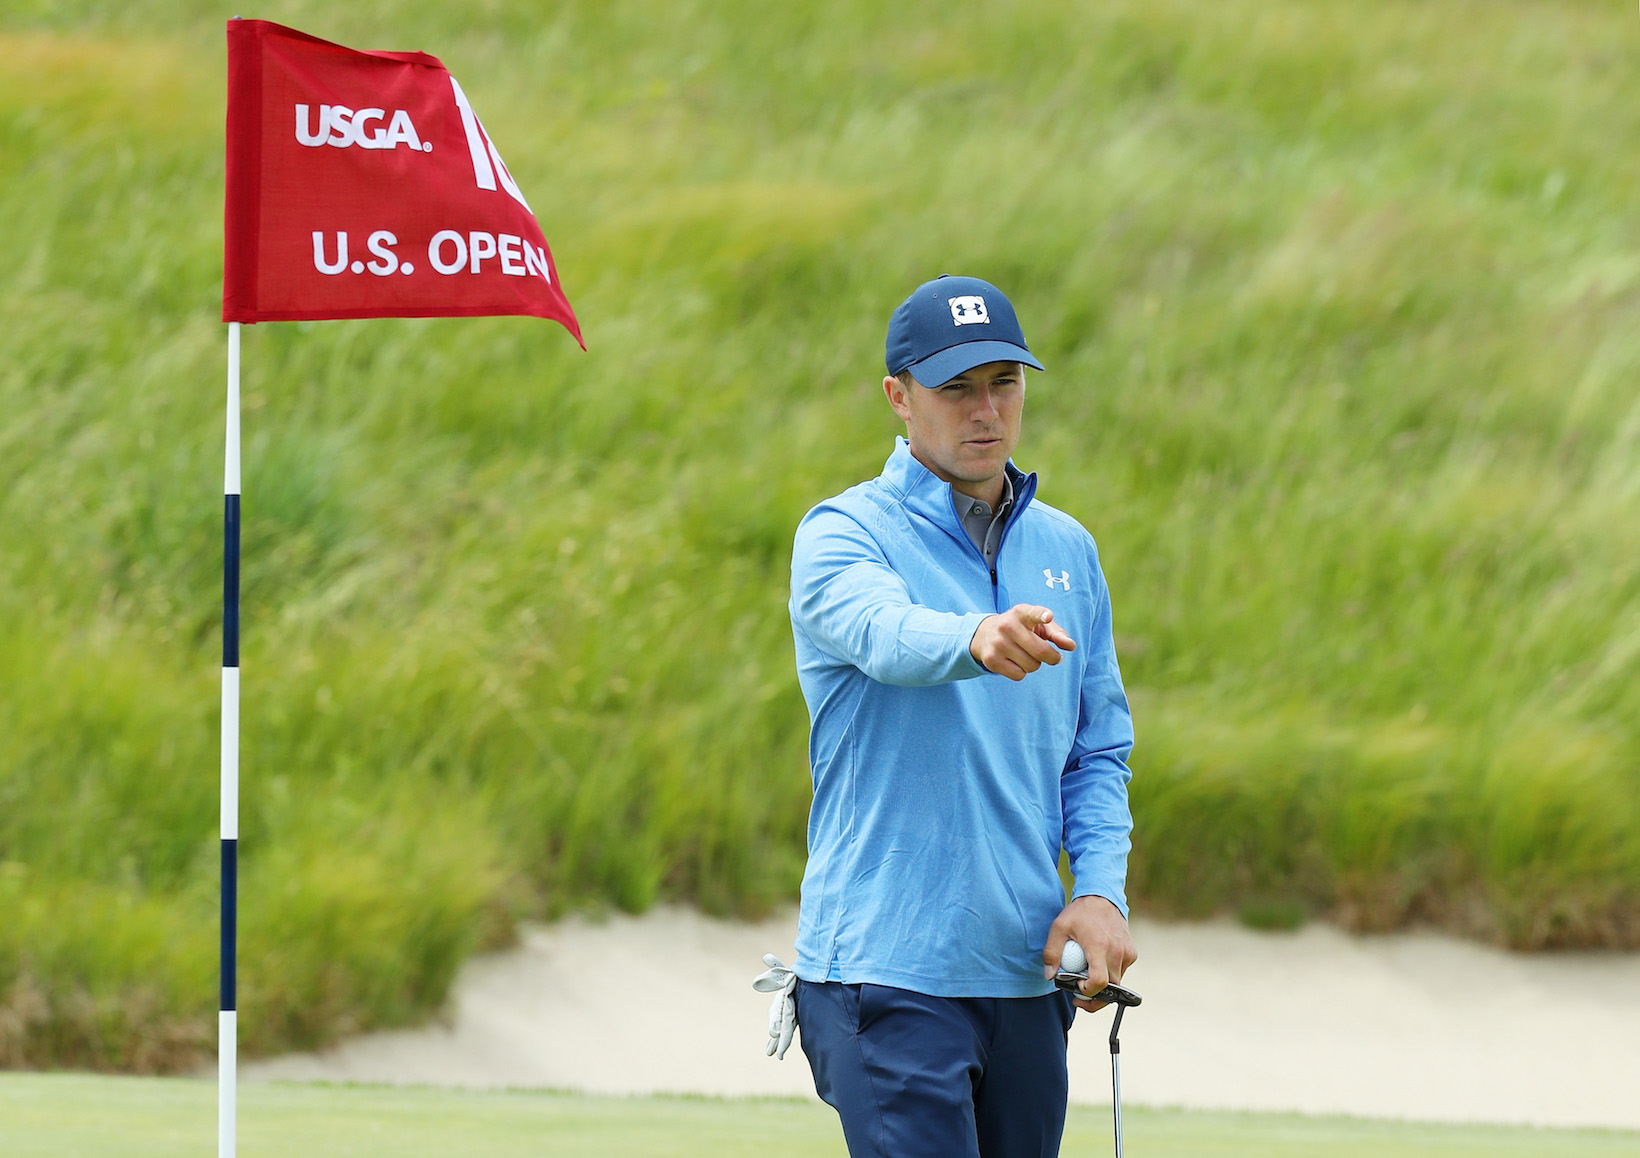 2018 U.S. Open Championship: Preview Day 1 - Reaction on No. 18